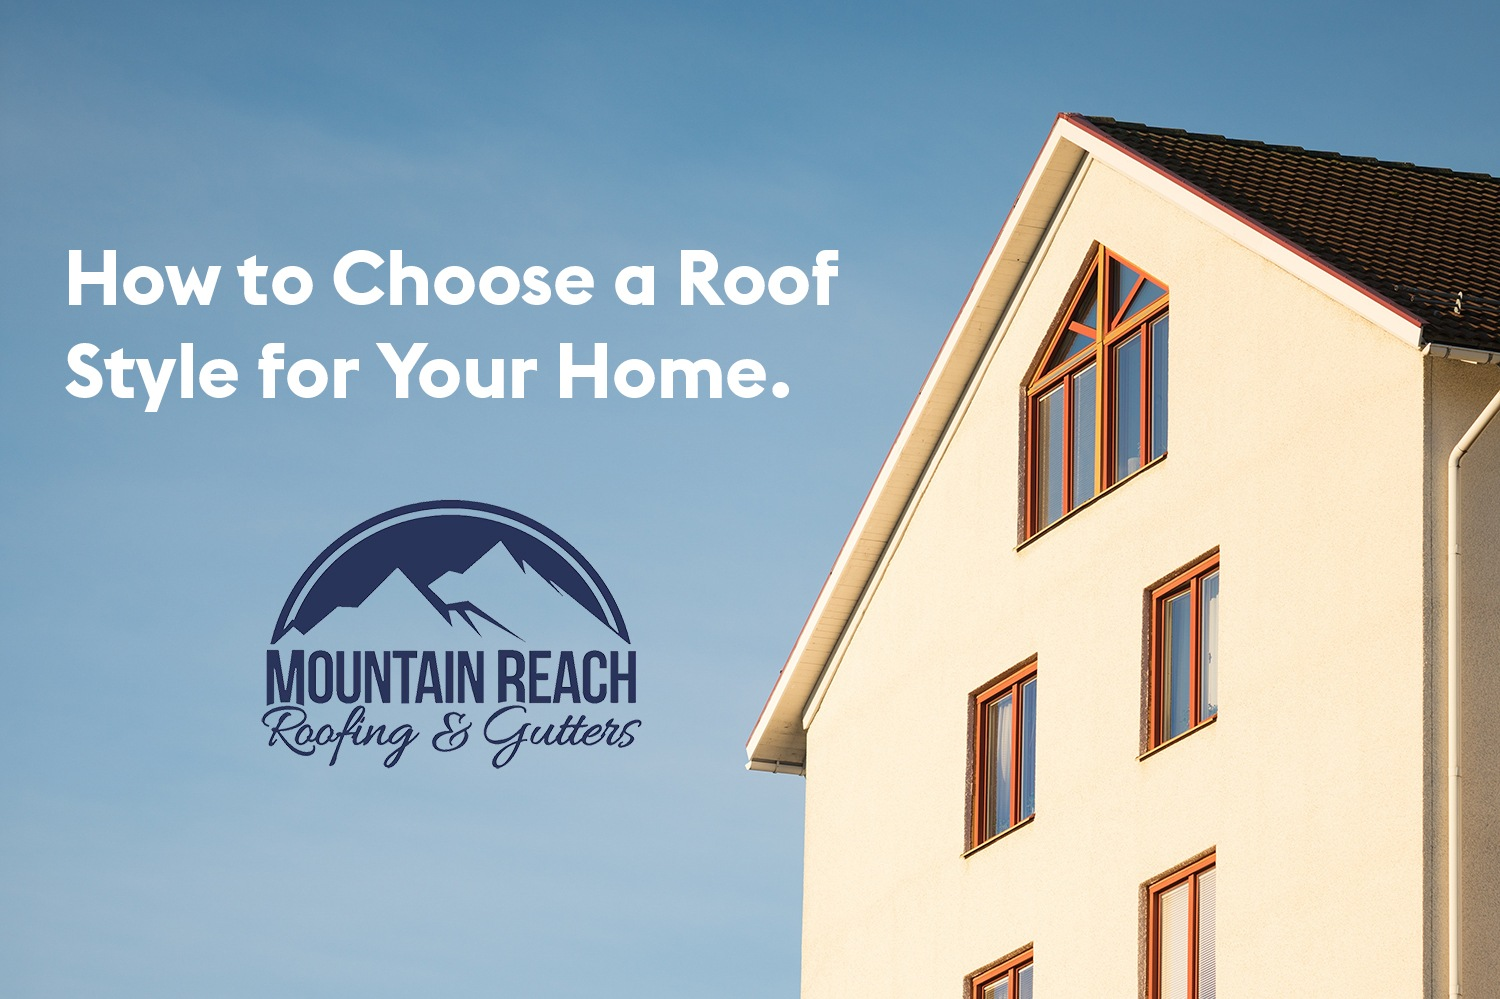 How to Choose a Roof Style for Your Home